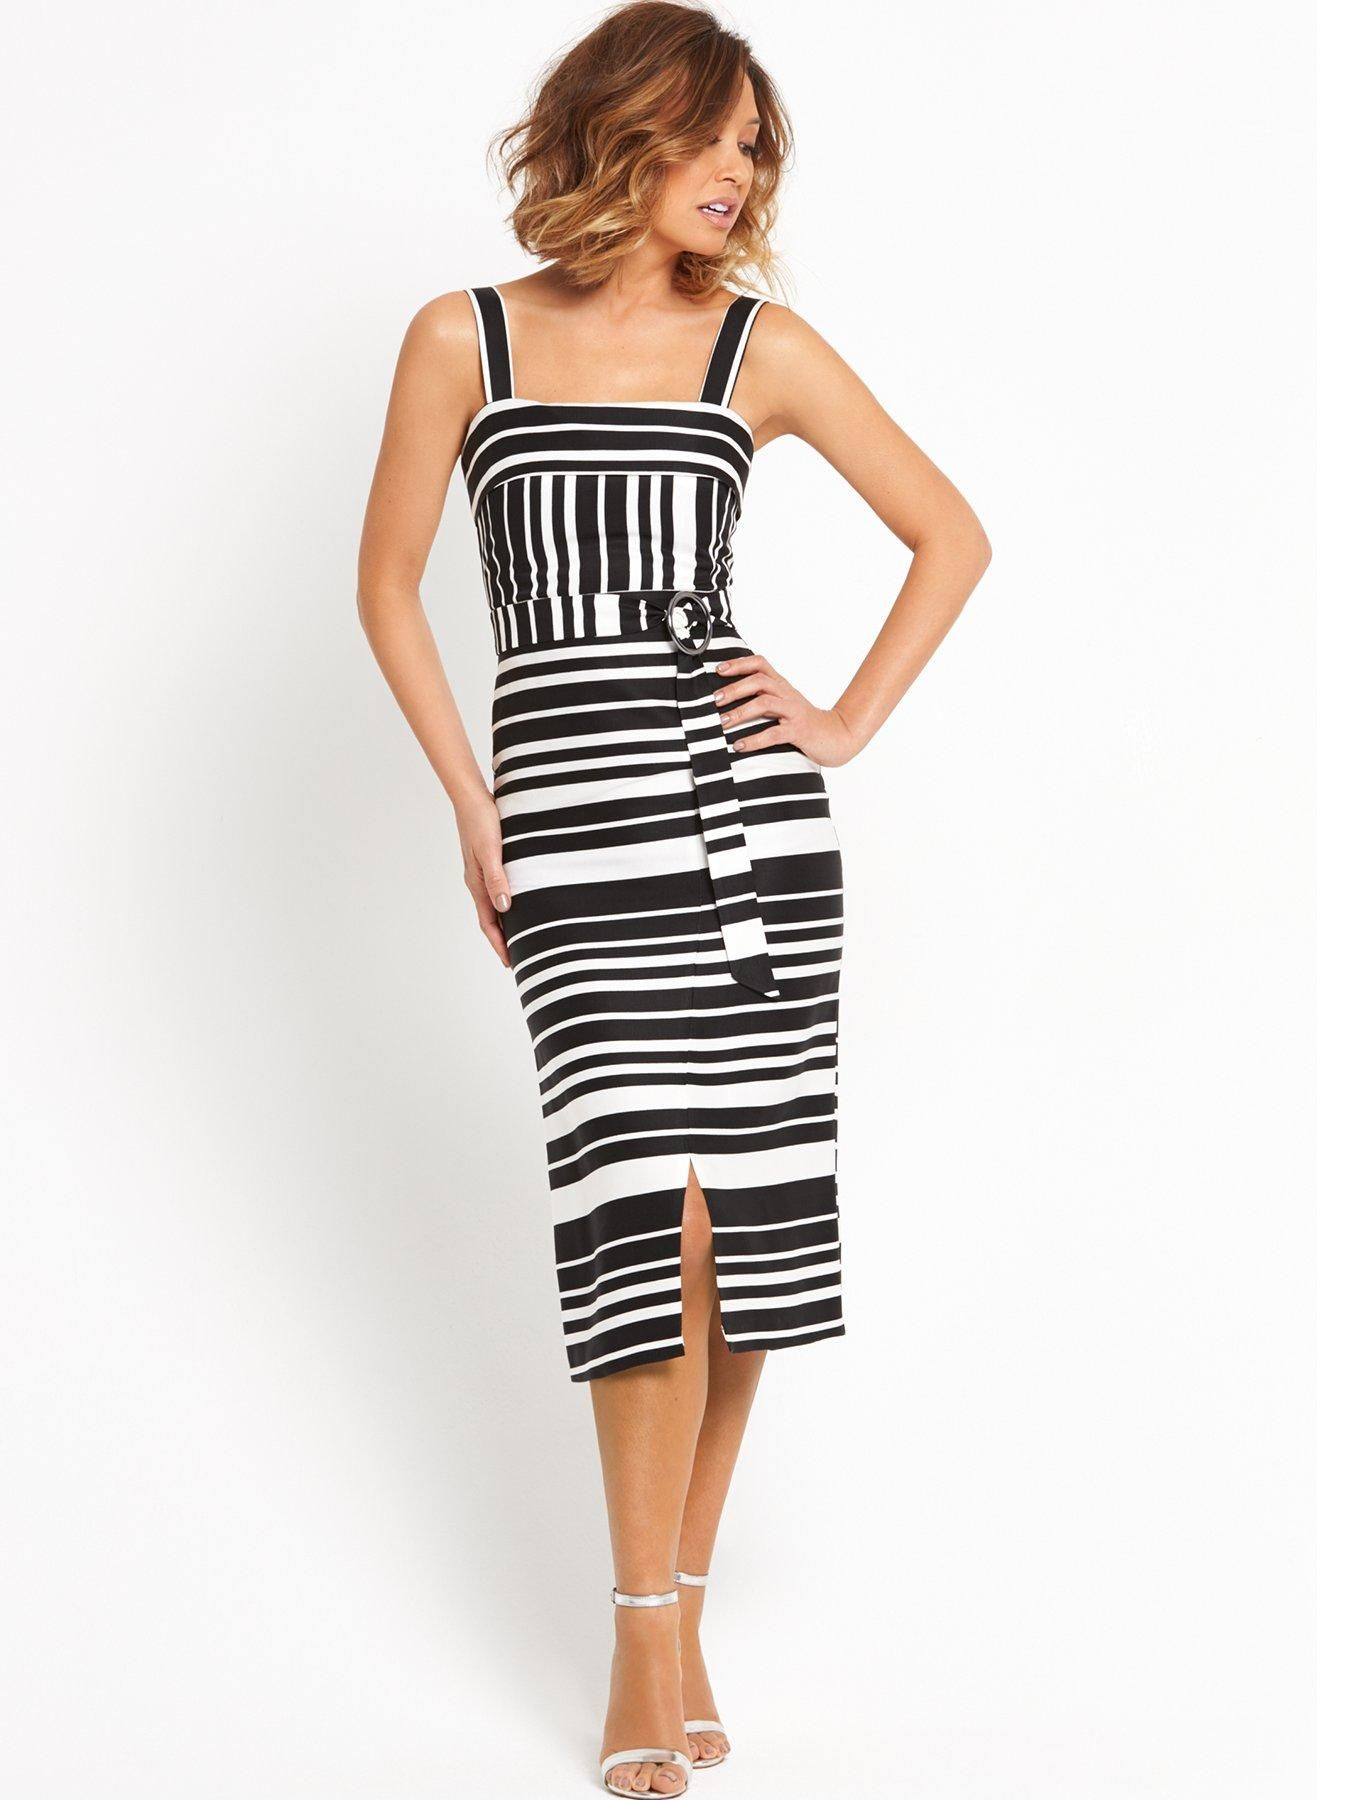 Black sandals littlewoods - Leading The Glamour Was Presenter Myleene Klass Who Highlighted Her Slim Figure In A Black And White Midi Dress From Her Littlewoods Collection